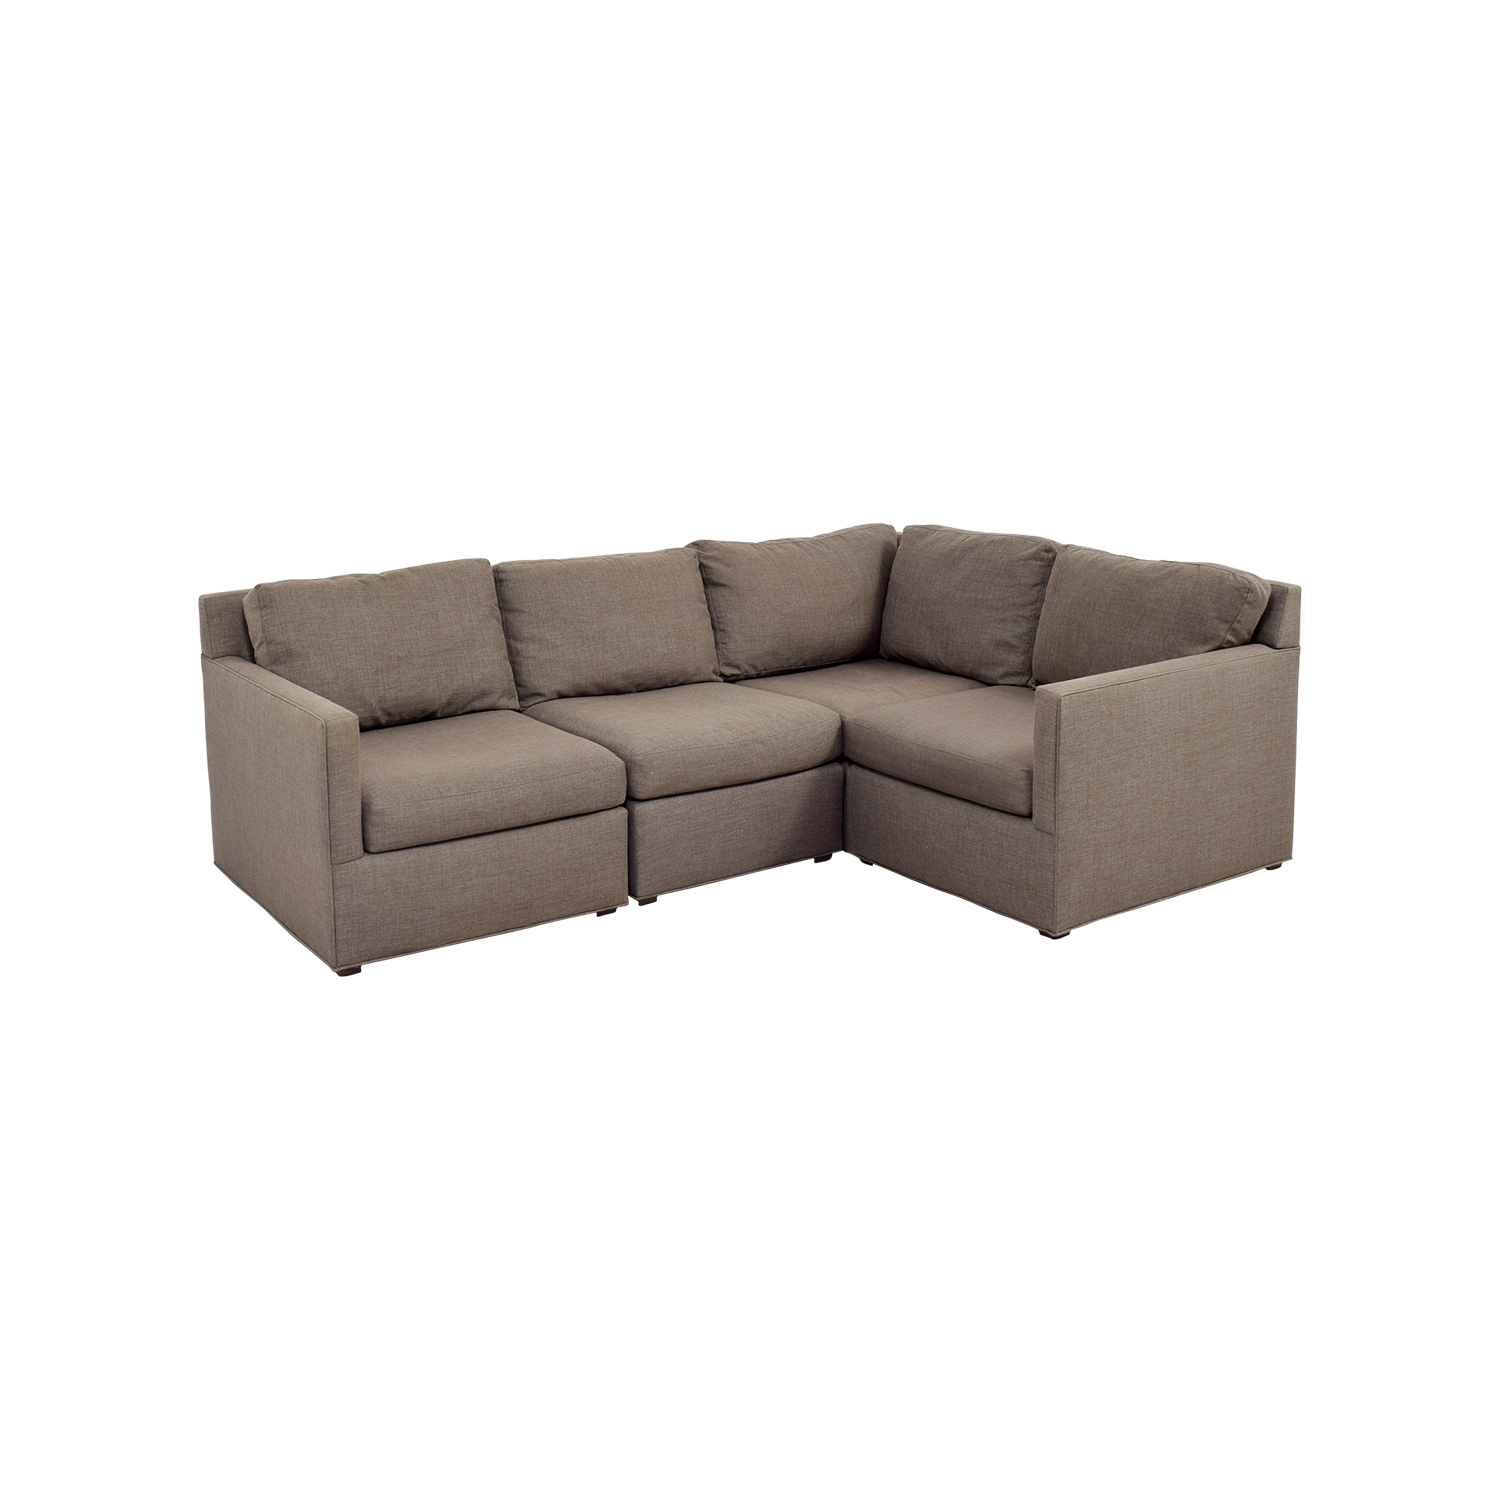 crate and barrel davis sofa leather beds 71 off sectional